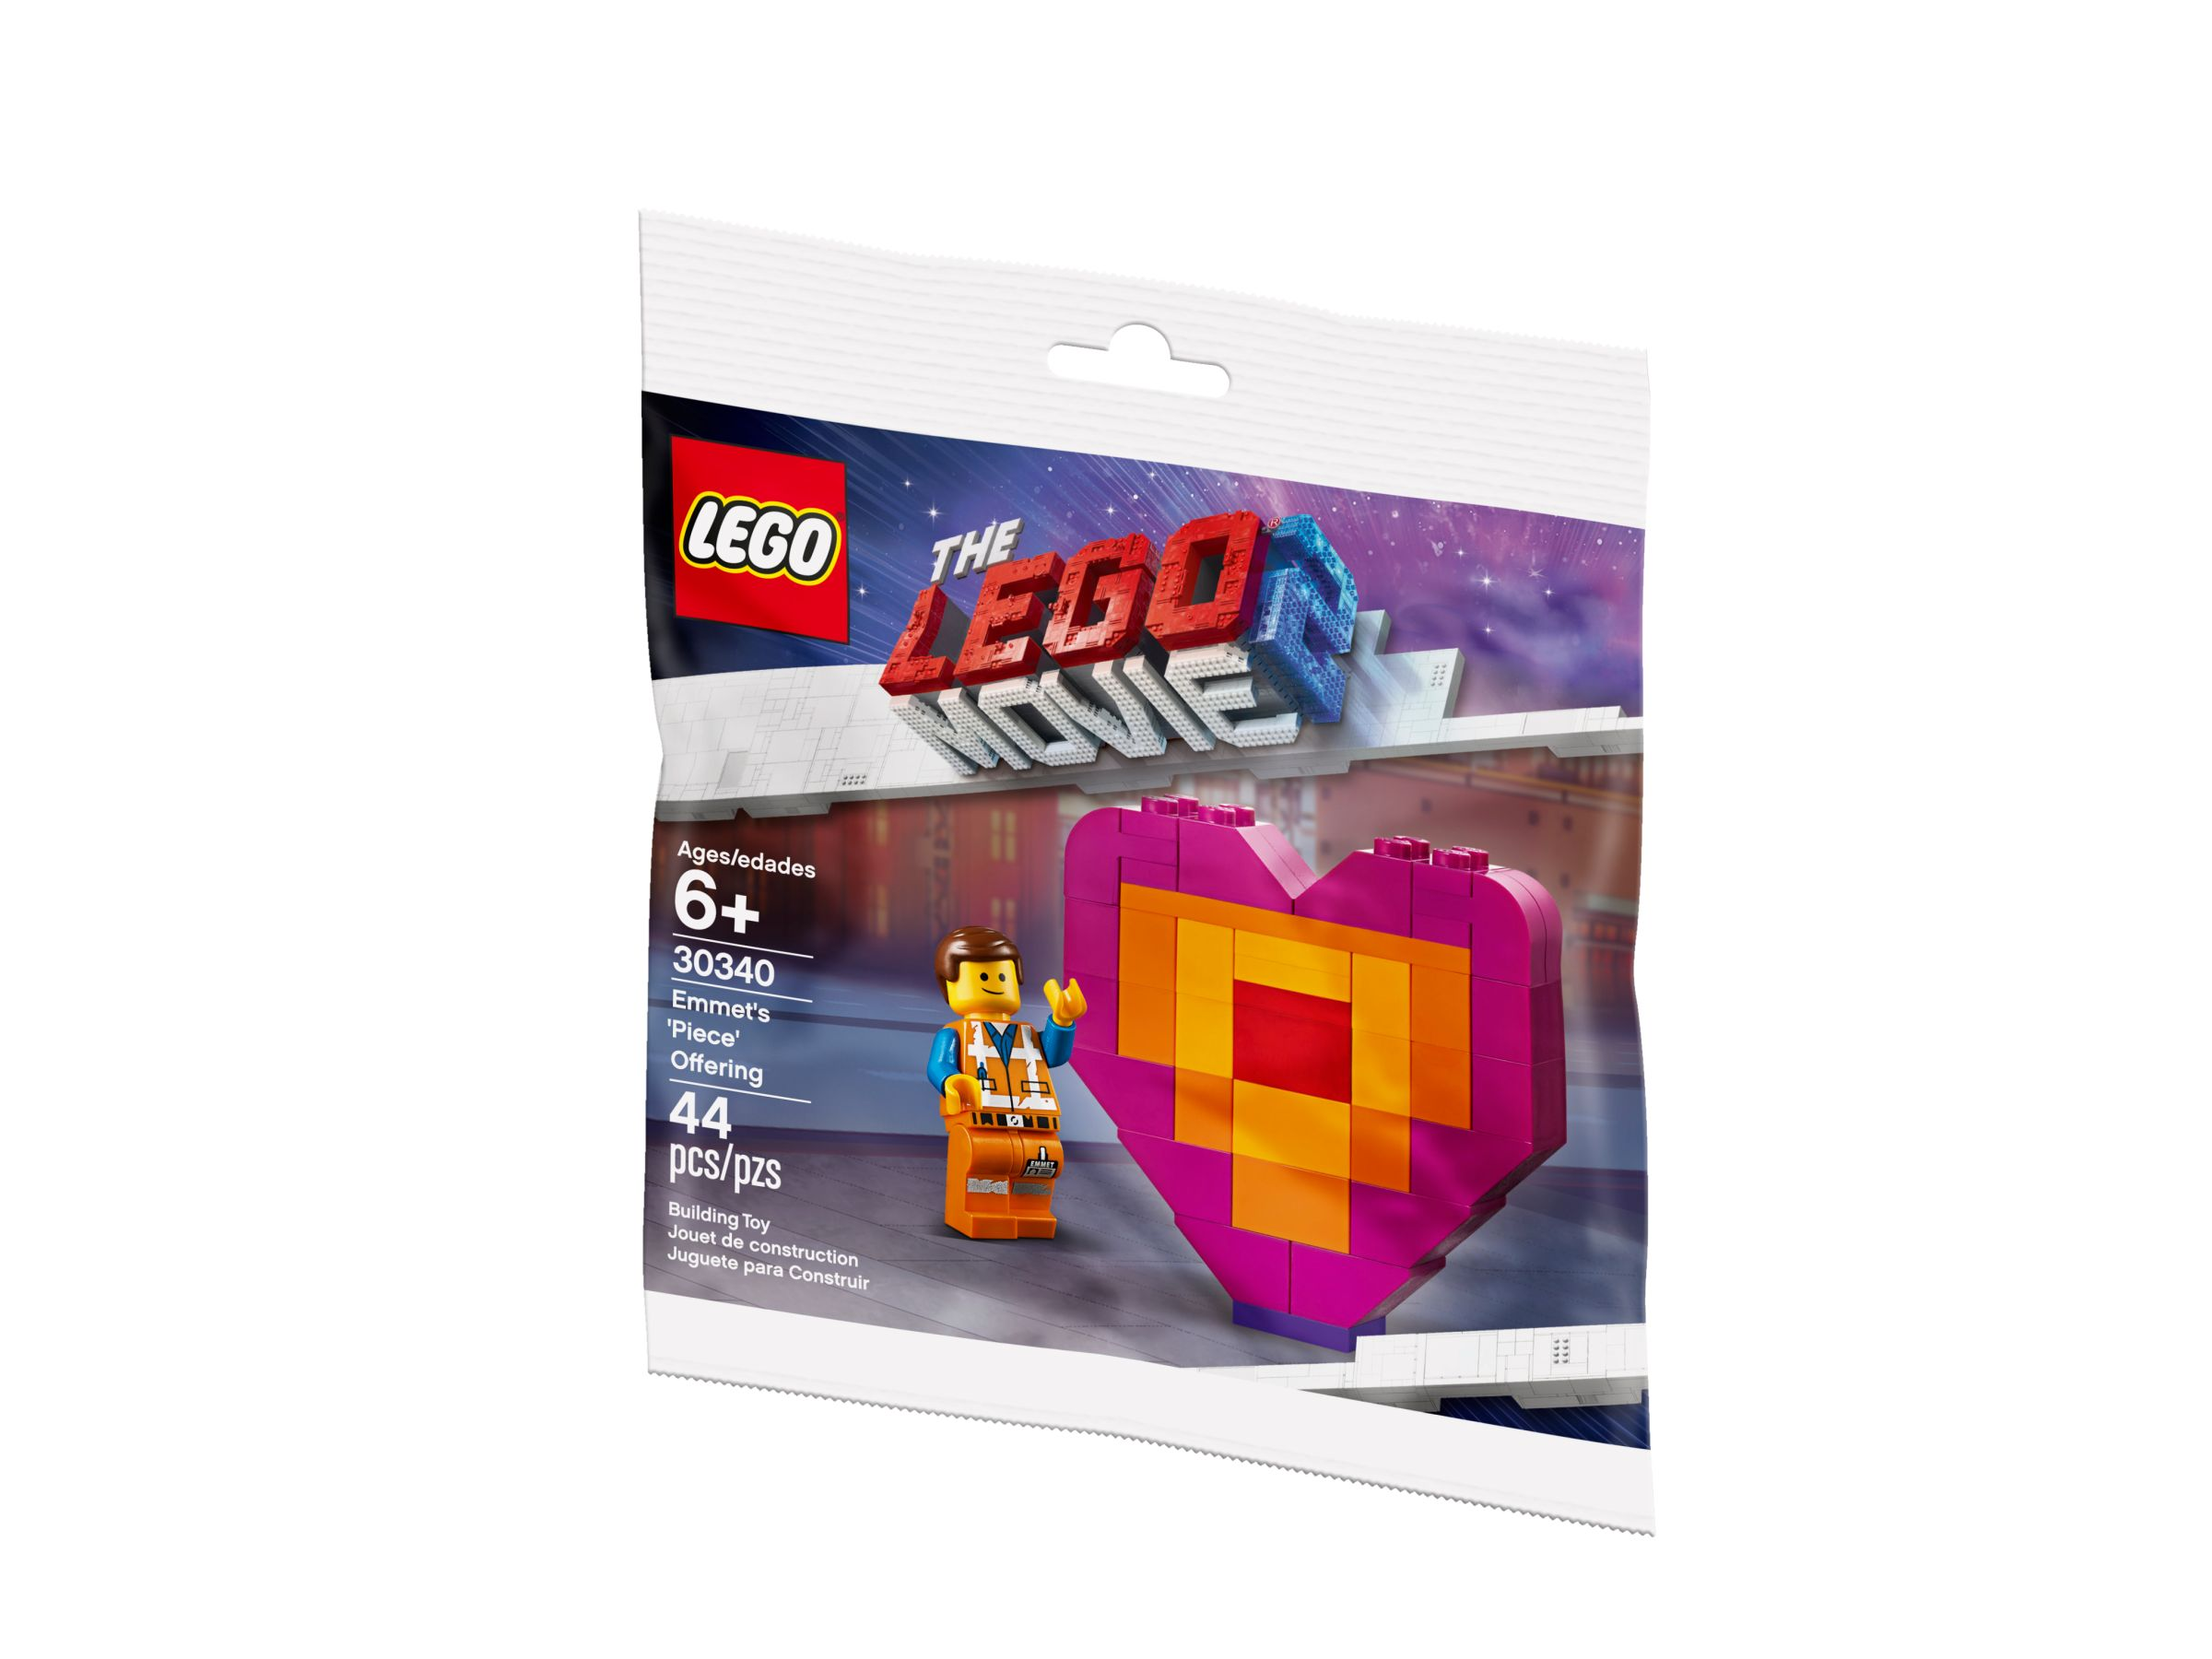 LEGO The LEGO Movie 2 30340 Emmet's Piece Offering LEGO_30340_alt2.jpg